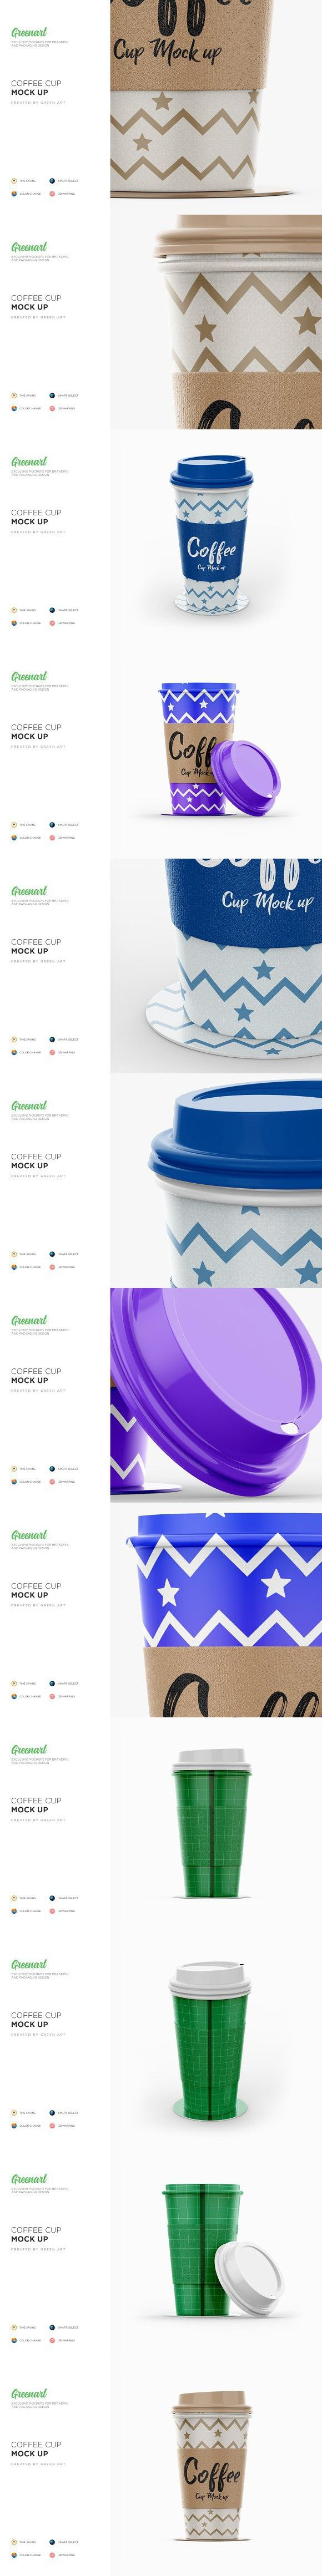 Coffee Cup 3 PSD Mockup Coffee cups, Mockup, Coffee design